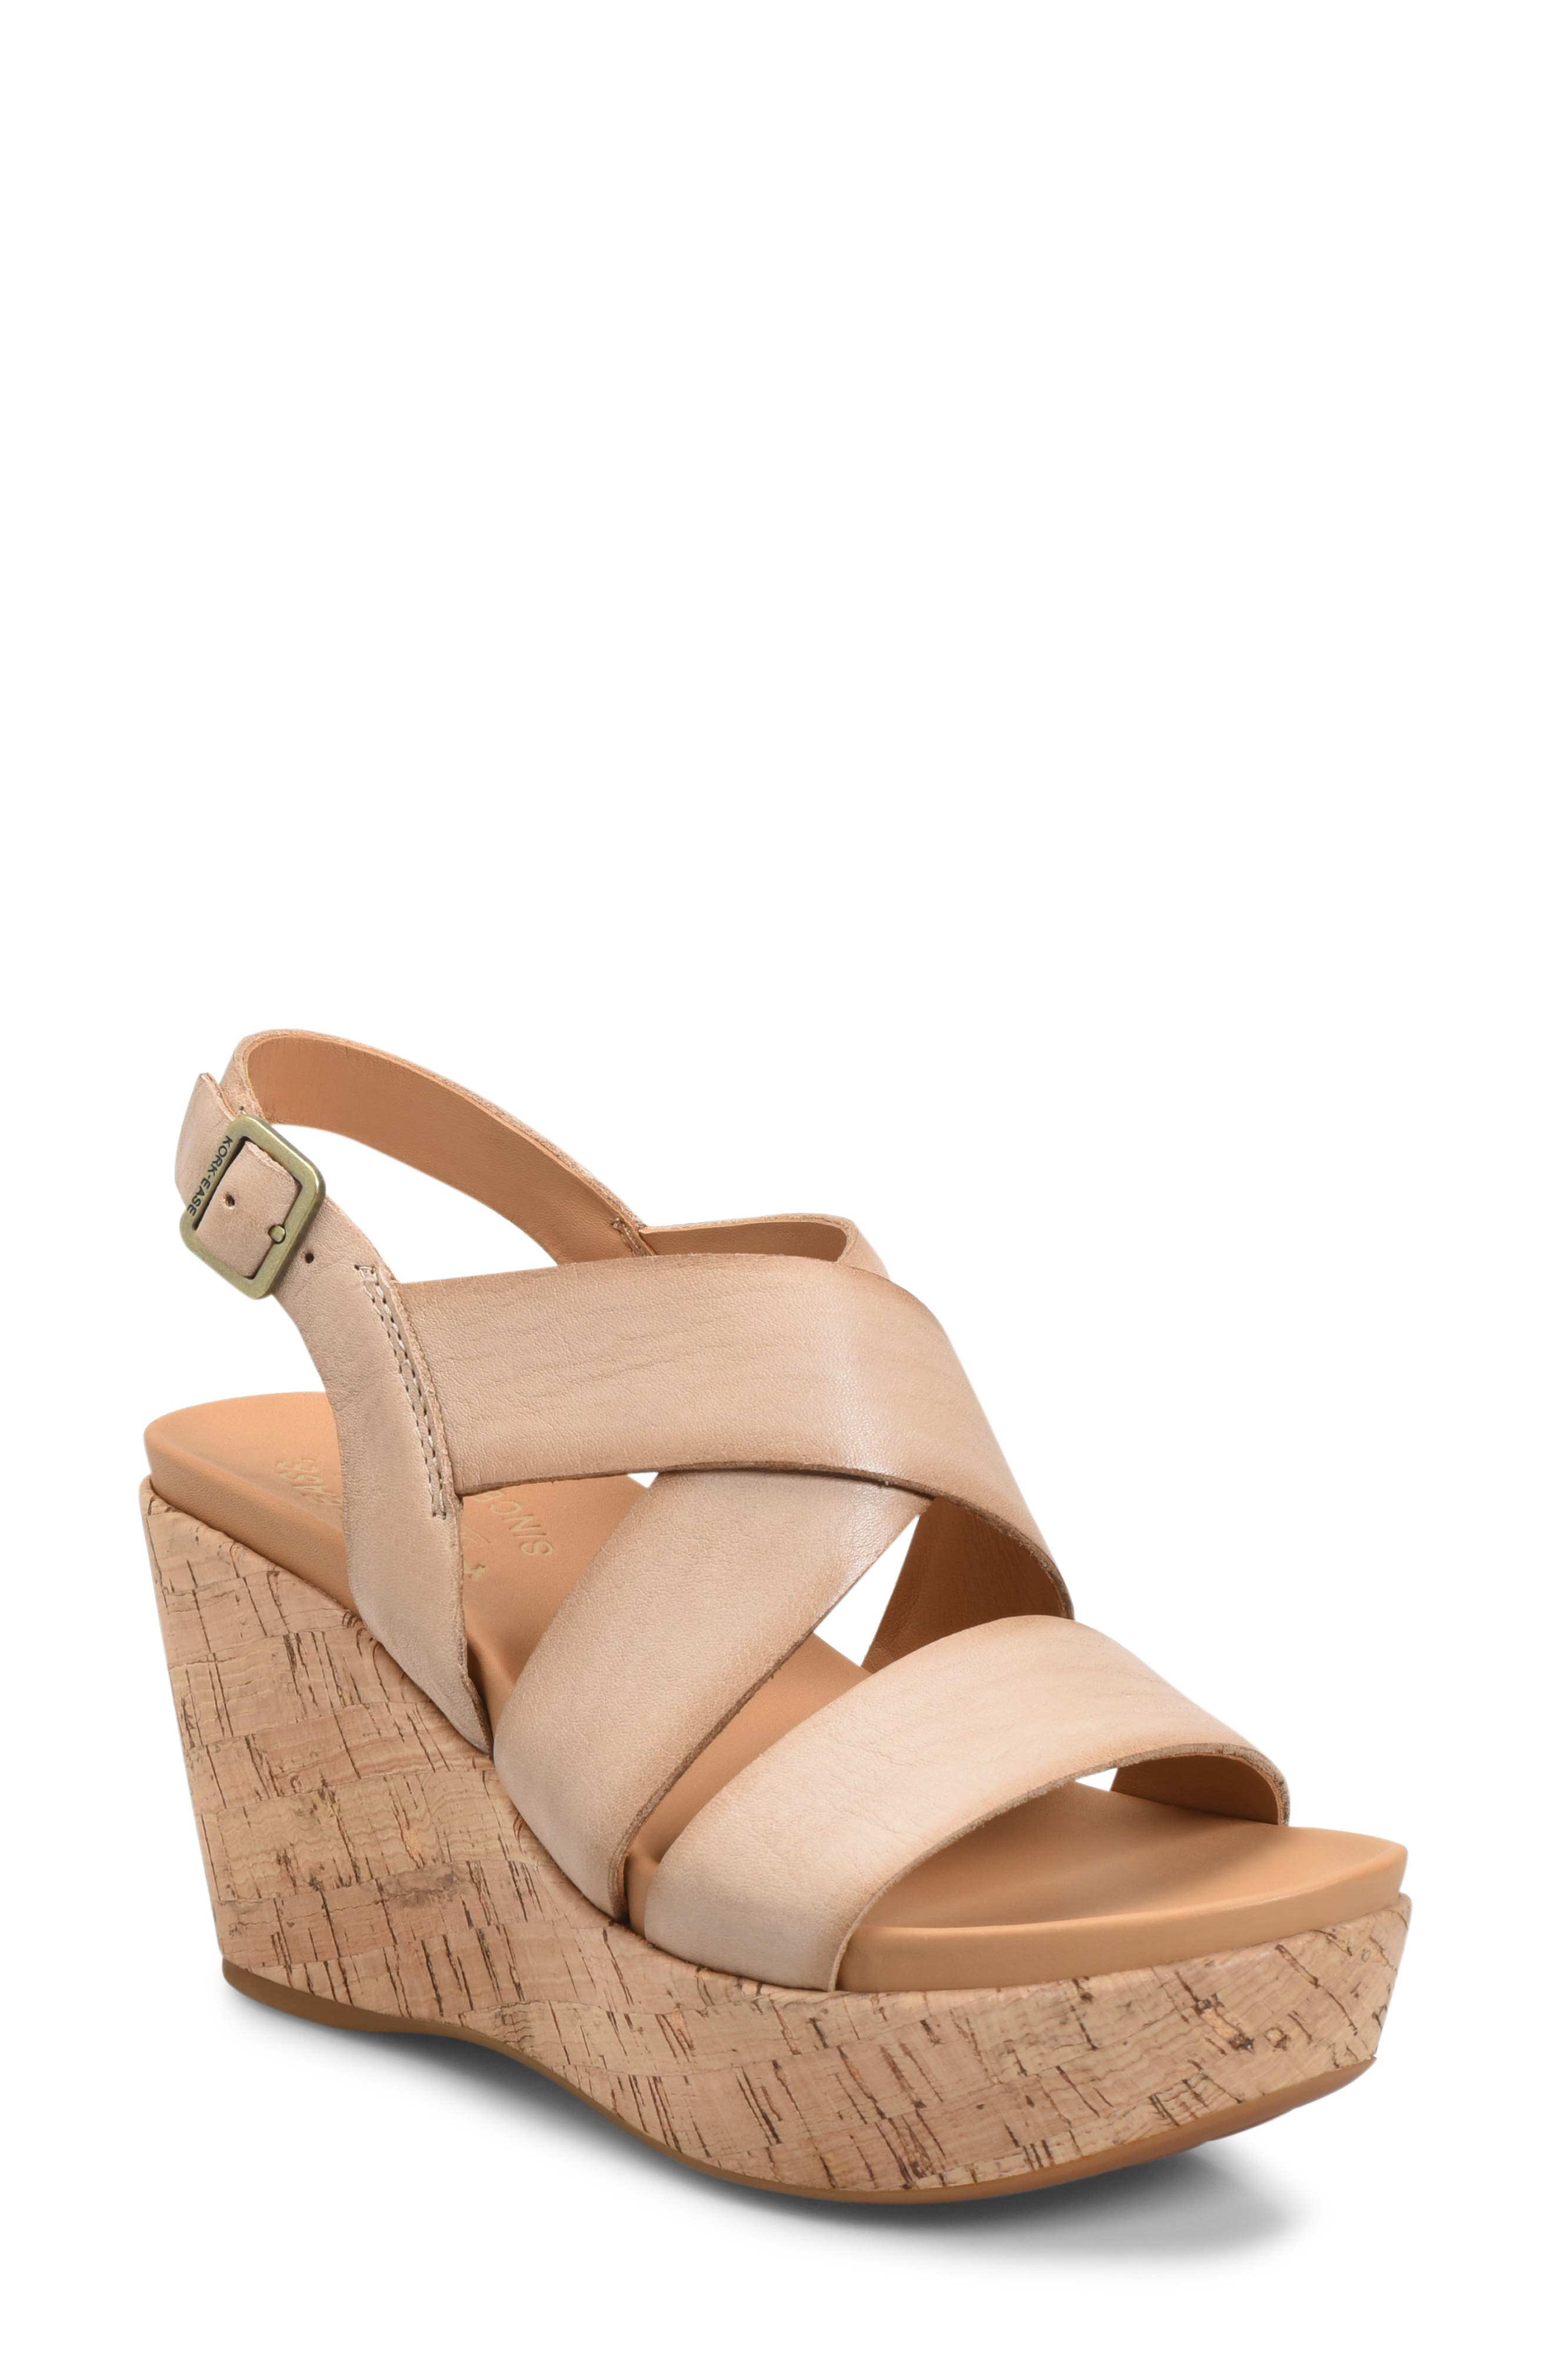 Ashcroft Wedge Sandal, Main, color, NATURAL LEATHER